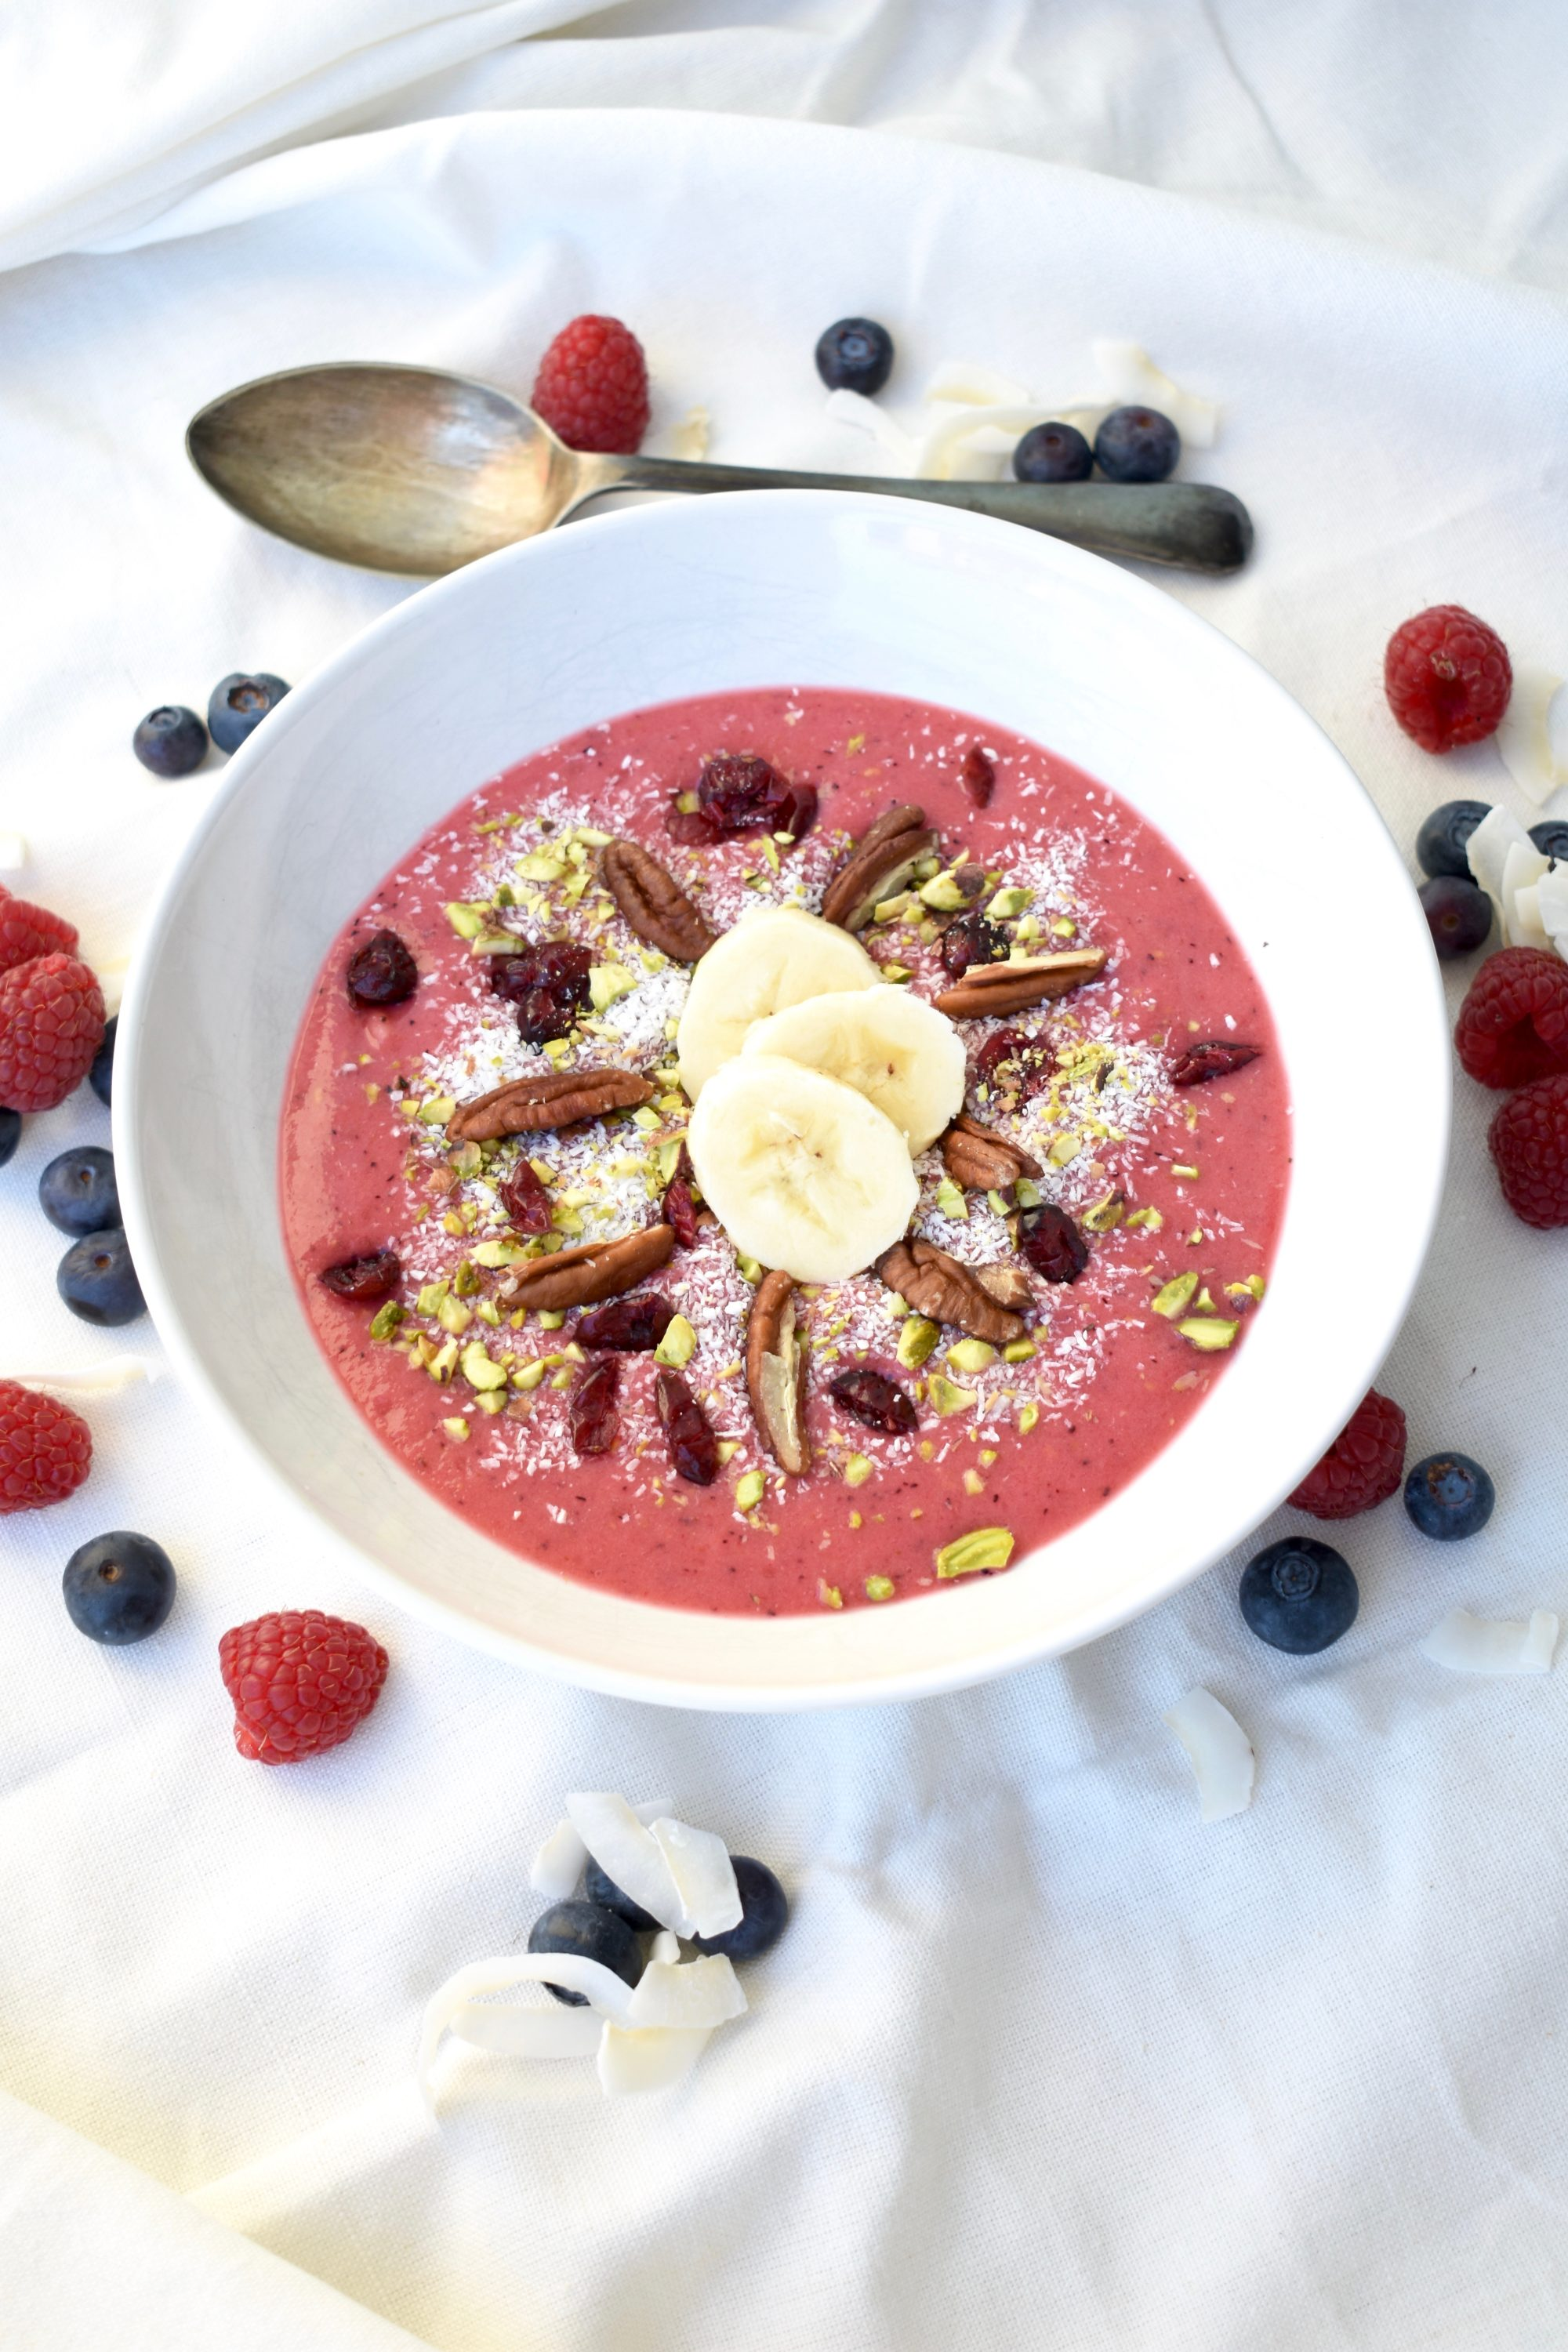 fresh healthy smoothie bowl, gastrogays recipe, healthy smoothie bowl recipe, instagram smoothie bowl, simple smoothie bowl, smoothie bowl, smoothie recipe gastrogays, smoothie recipe instagram